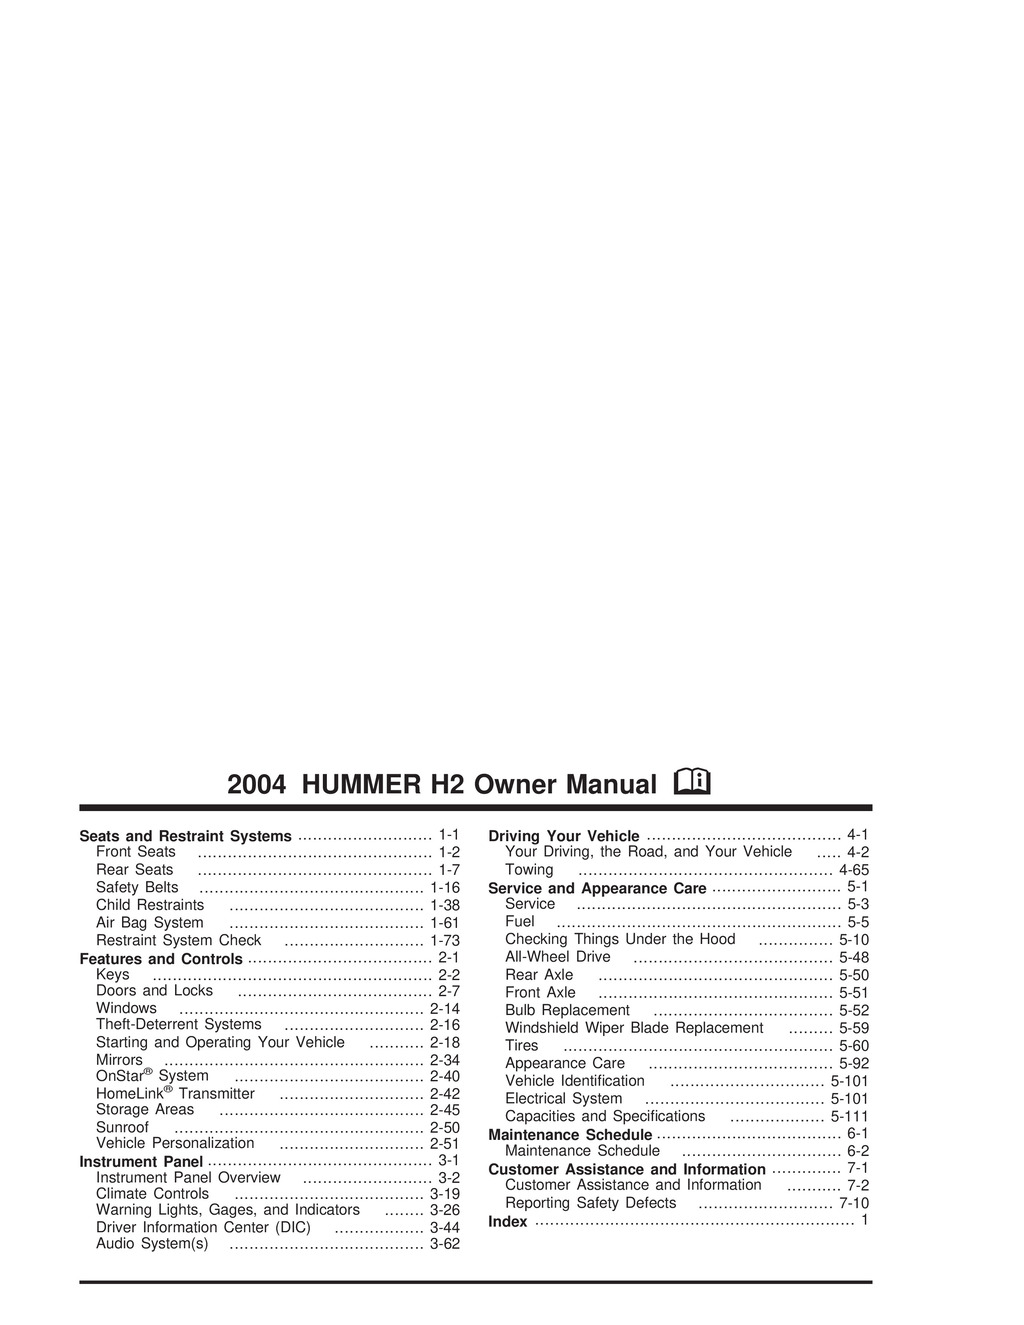 2004 Hummer H2 owners manual